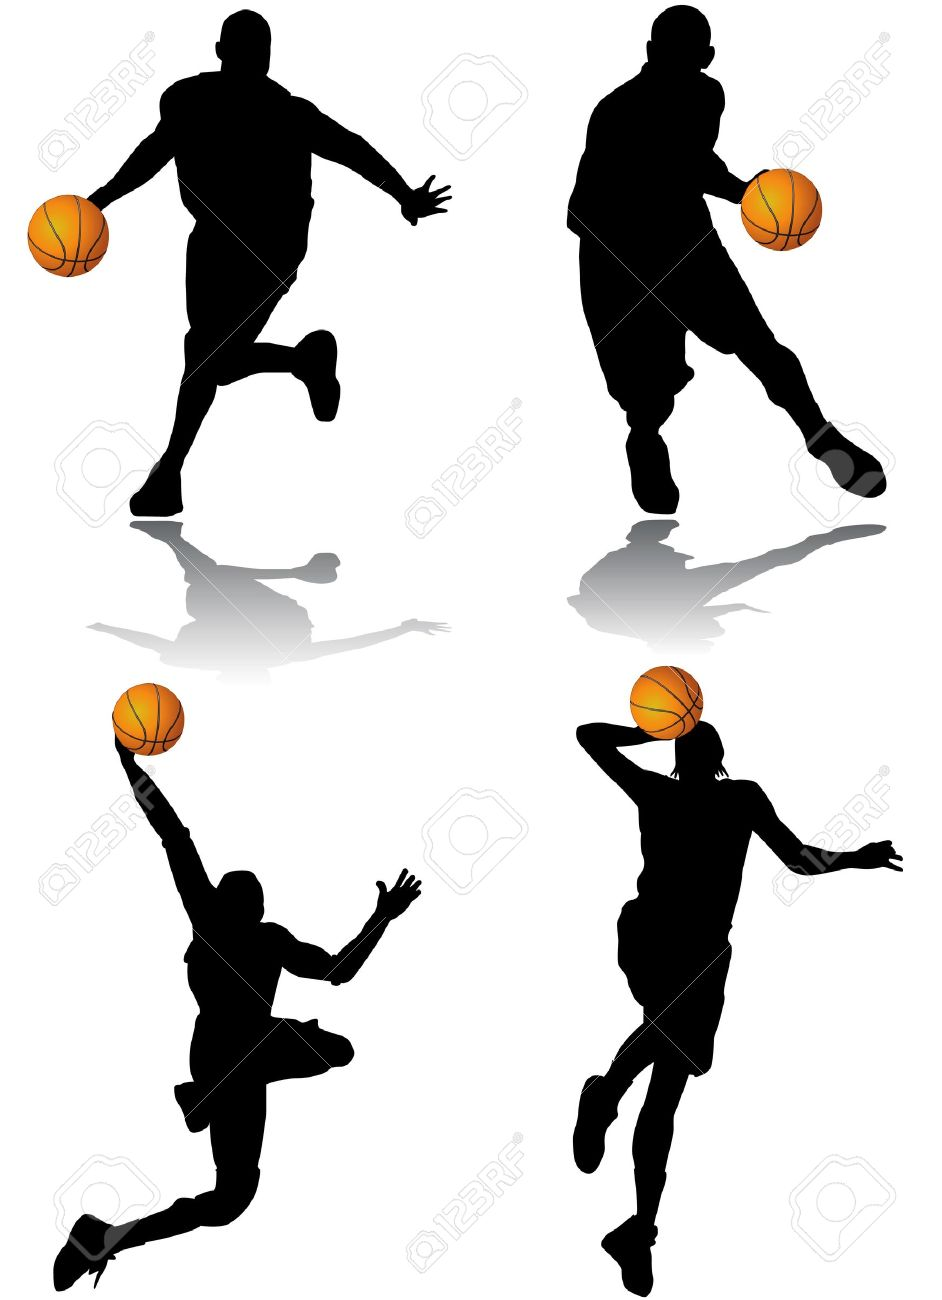 basketball player vector Stock Vector - 9505605